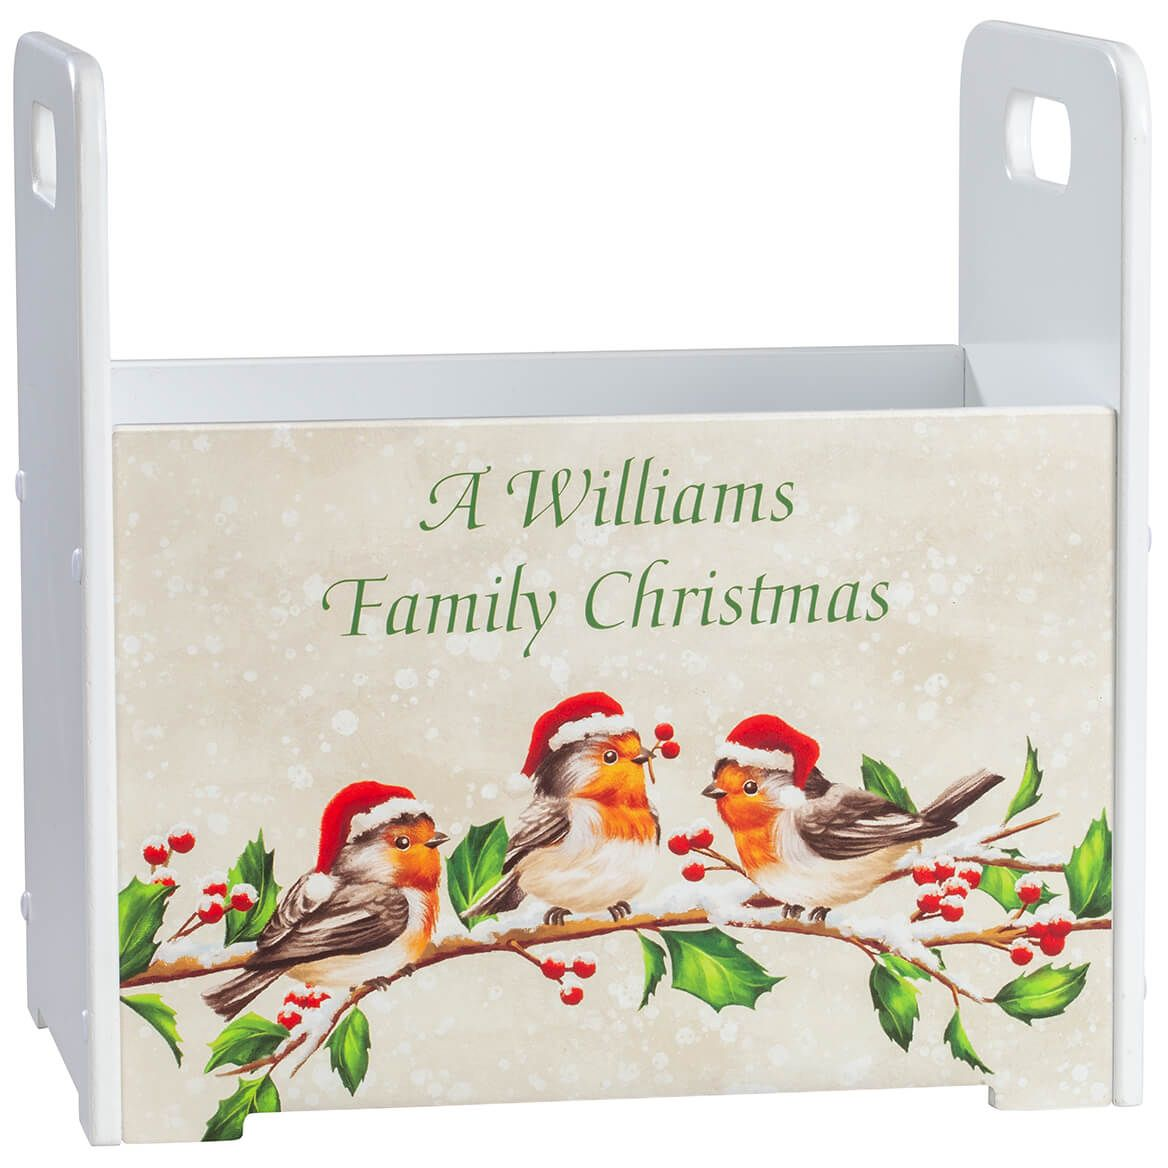 Personalized Bird with Hats Tall Caddy-371427